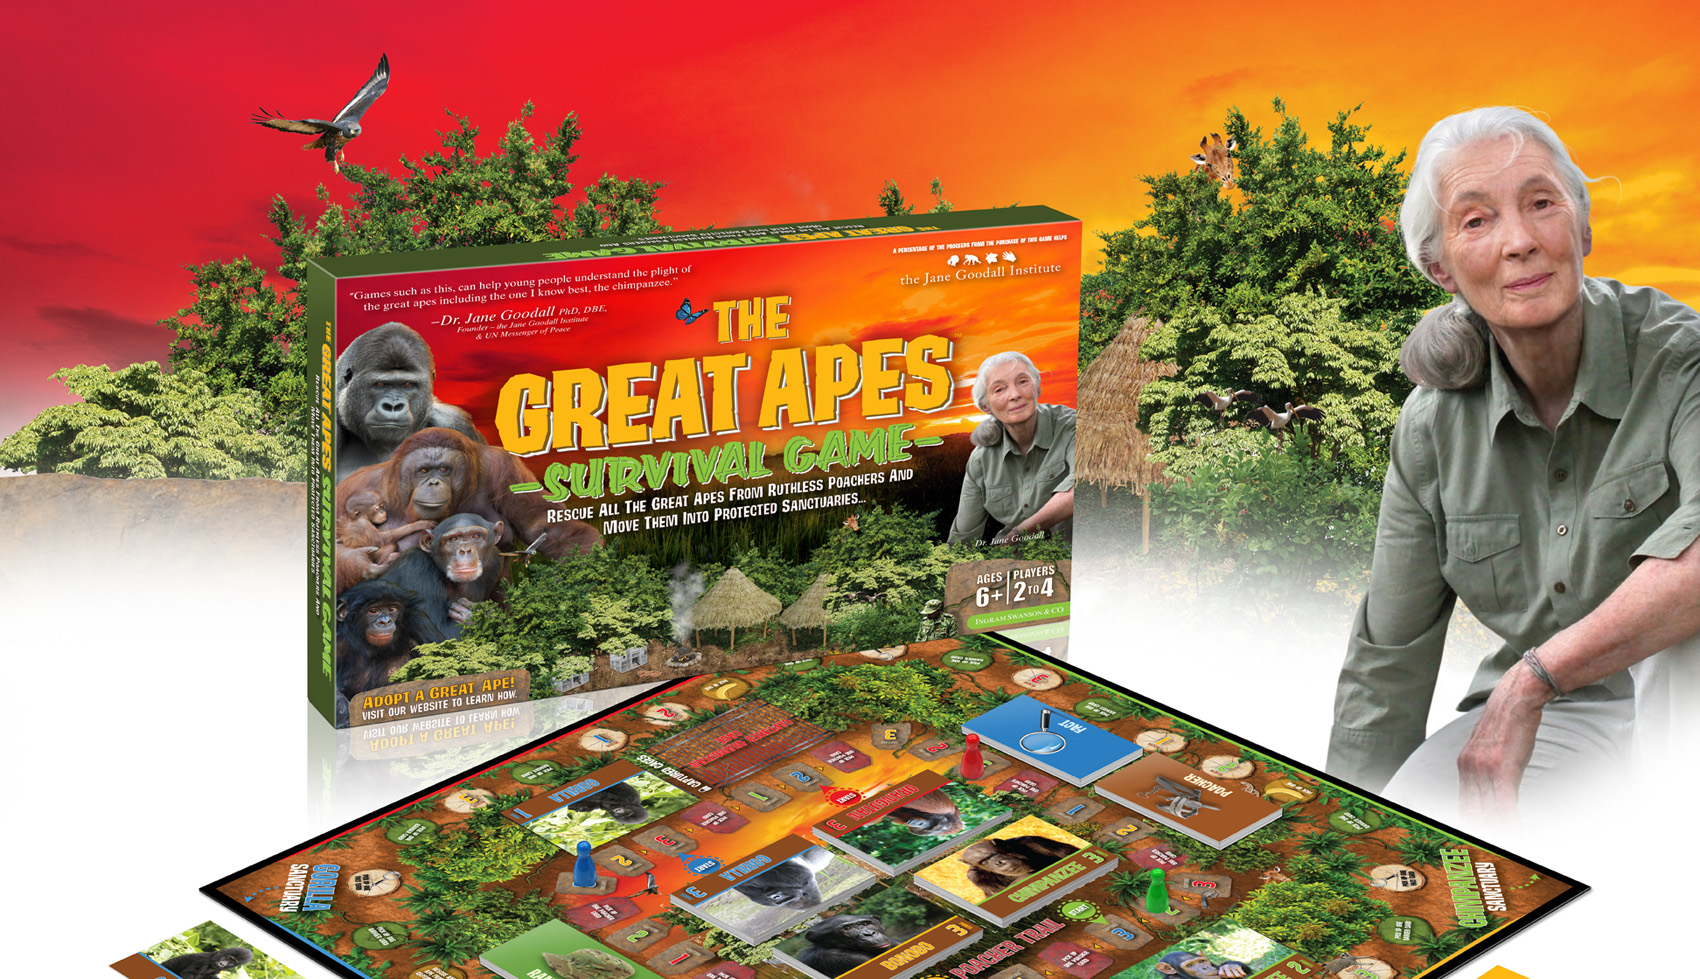 The Great Apes Survival Game featuring Dr. Jane Goodall from the Jane Goodall Institute.